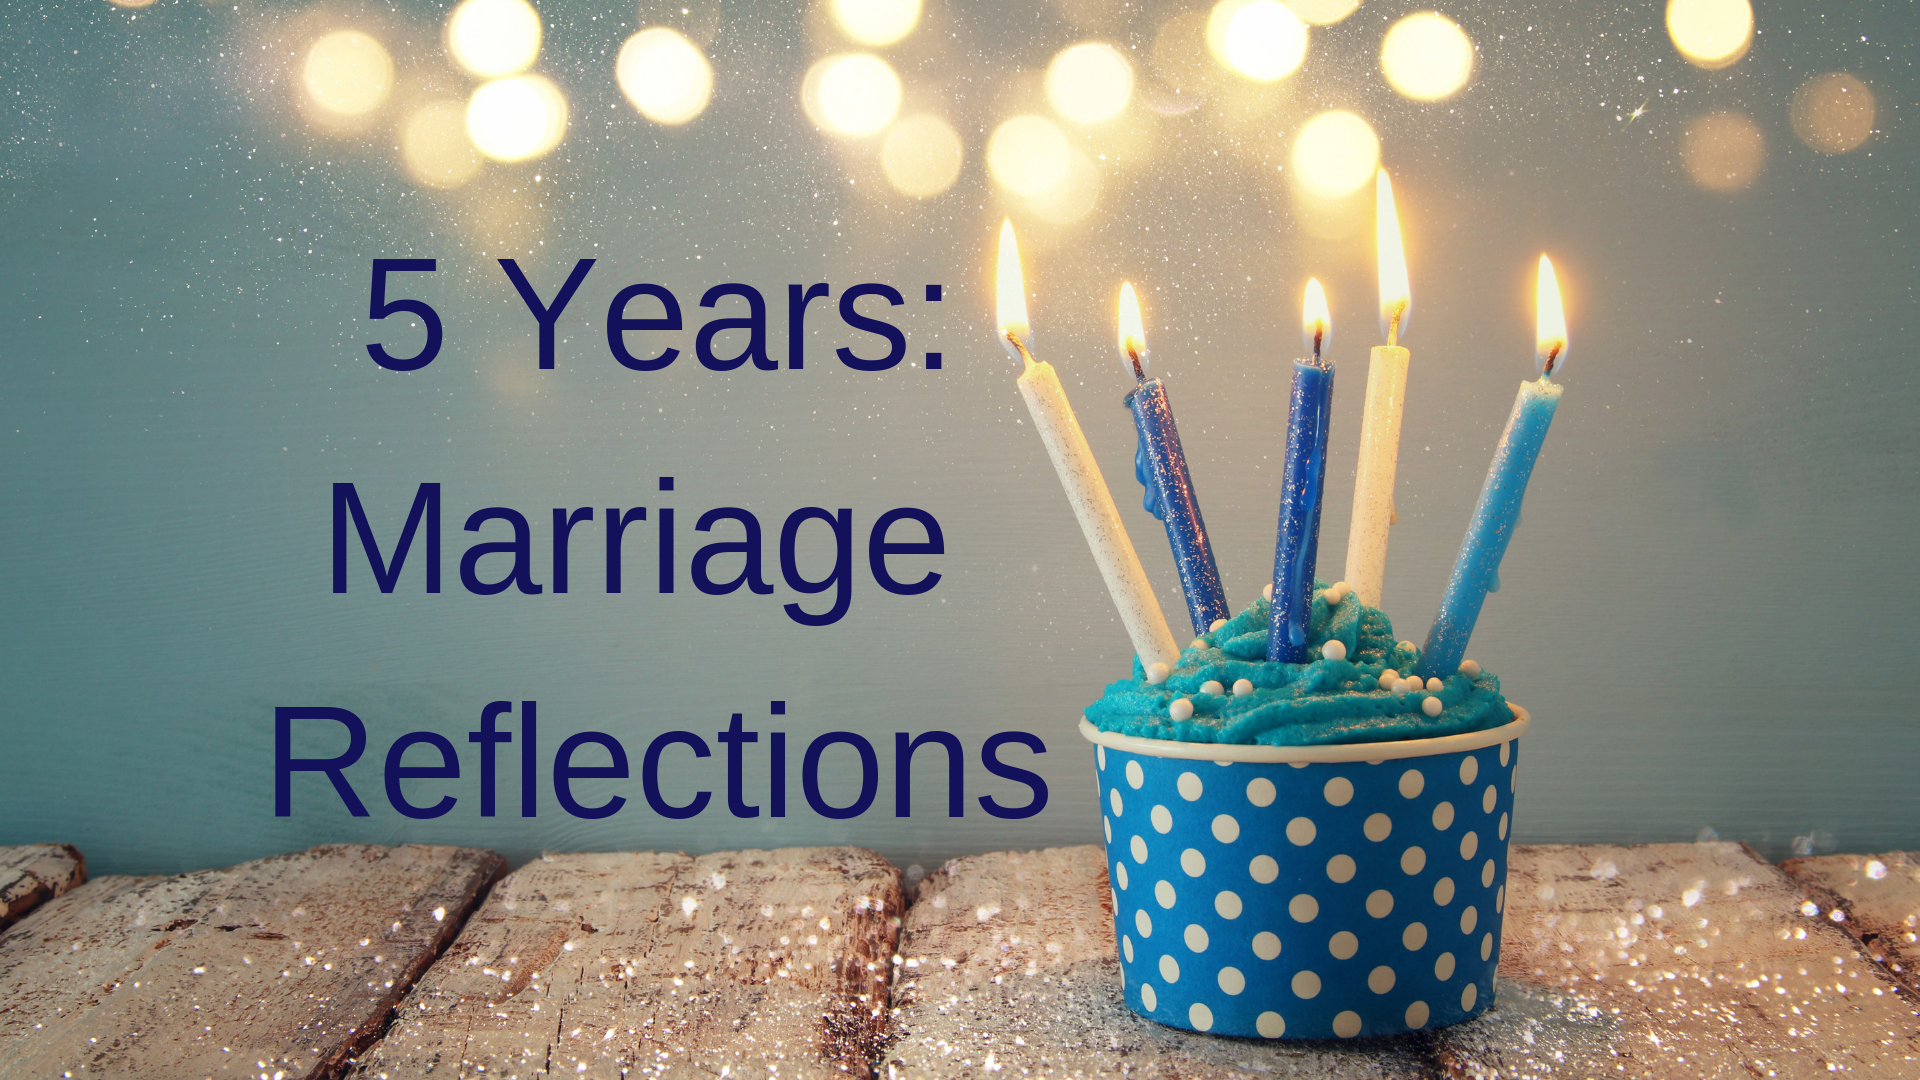 5 Years Marriage Reflections - Adobe Stock - Canva